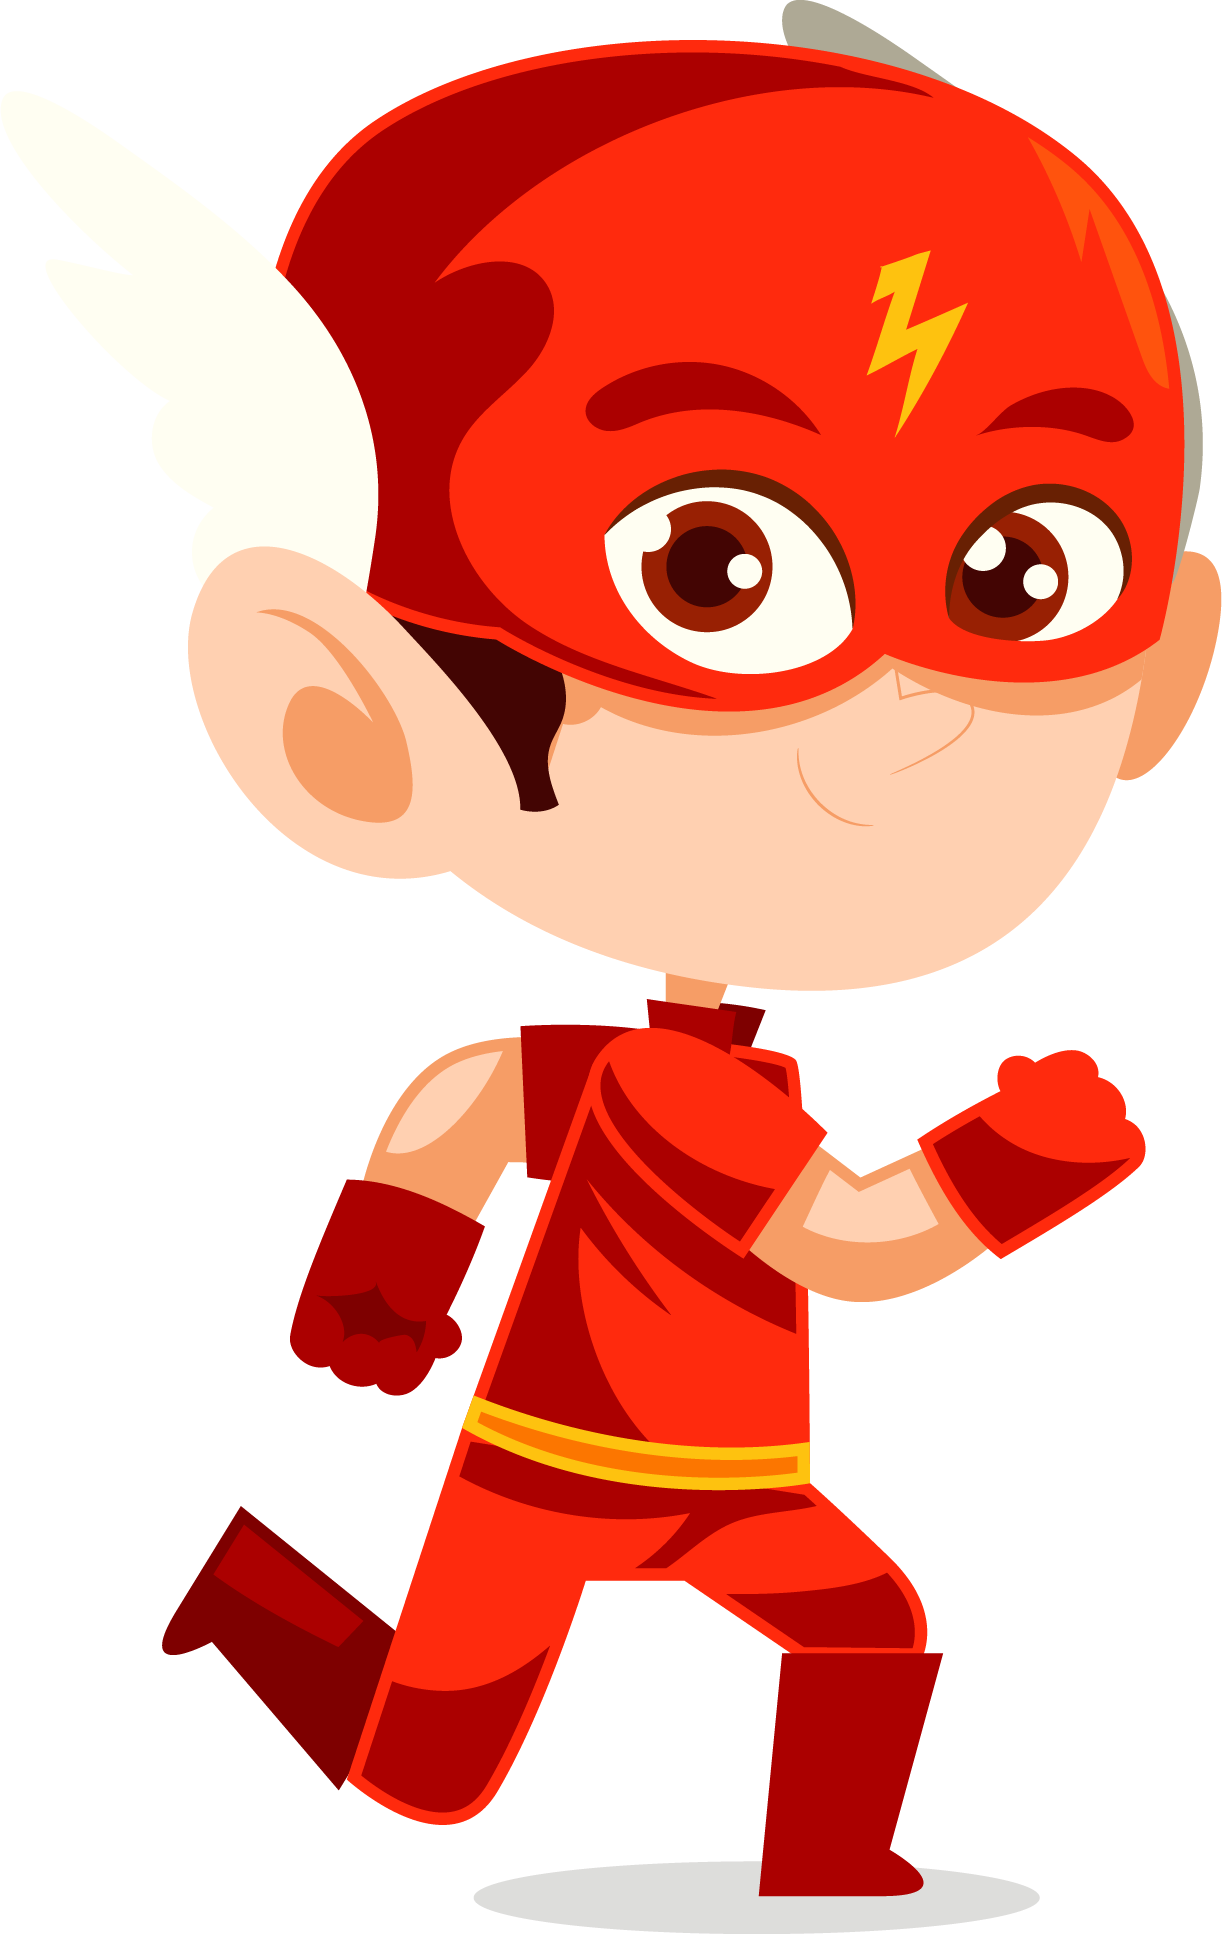 the flash png images superhero series png only #27241